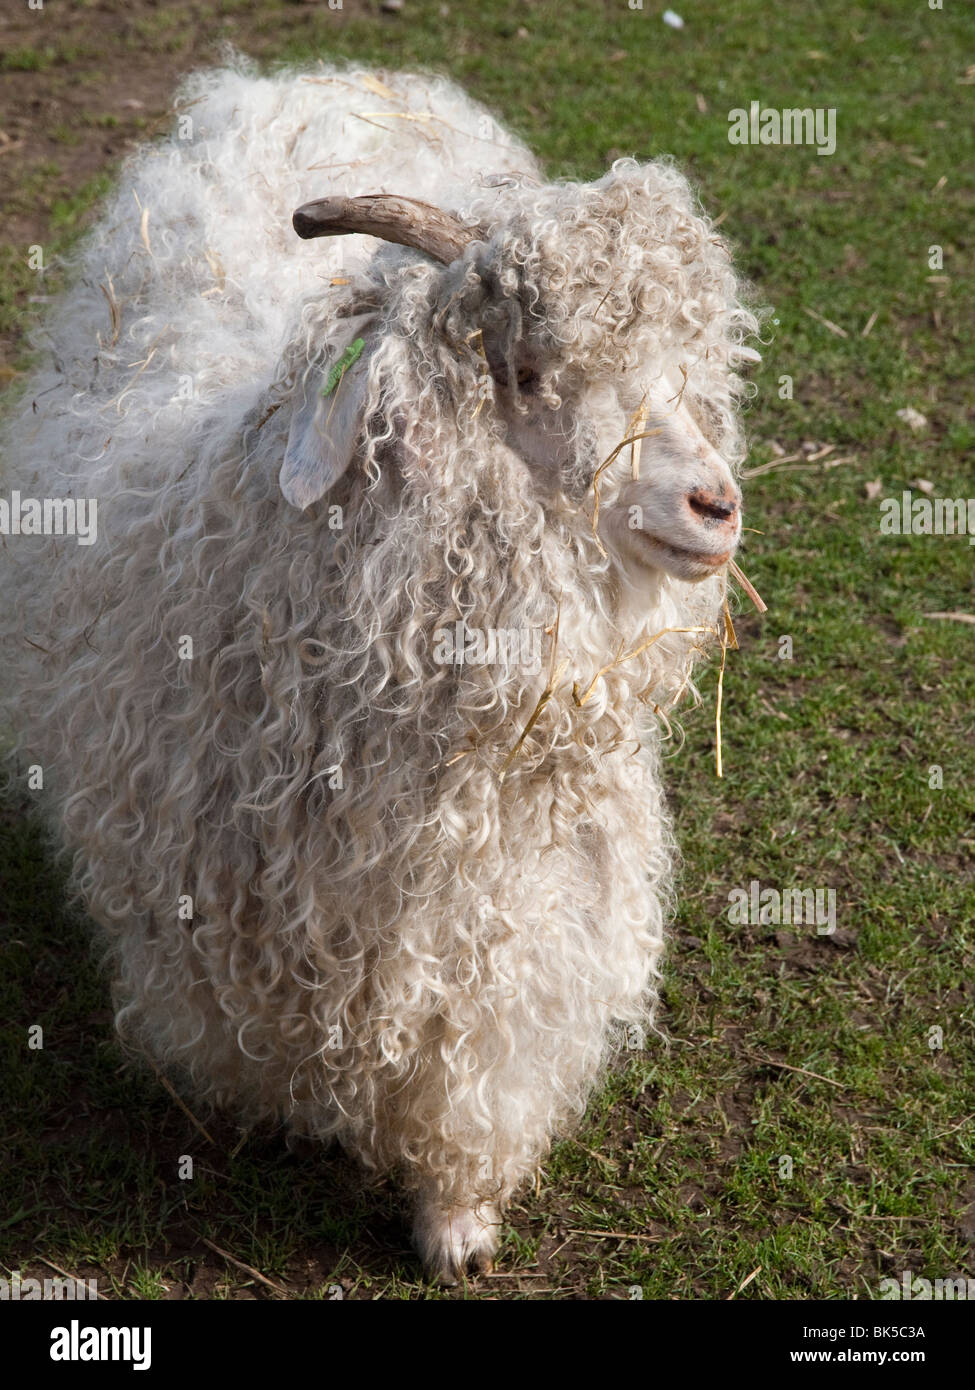 Long Haired Sheep Stock Photos & Long Haired Sheep Stock